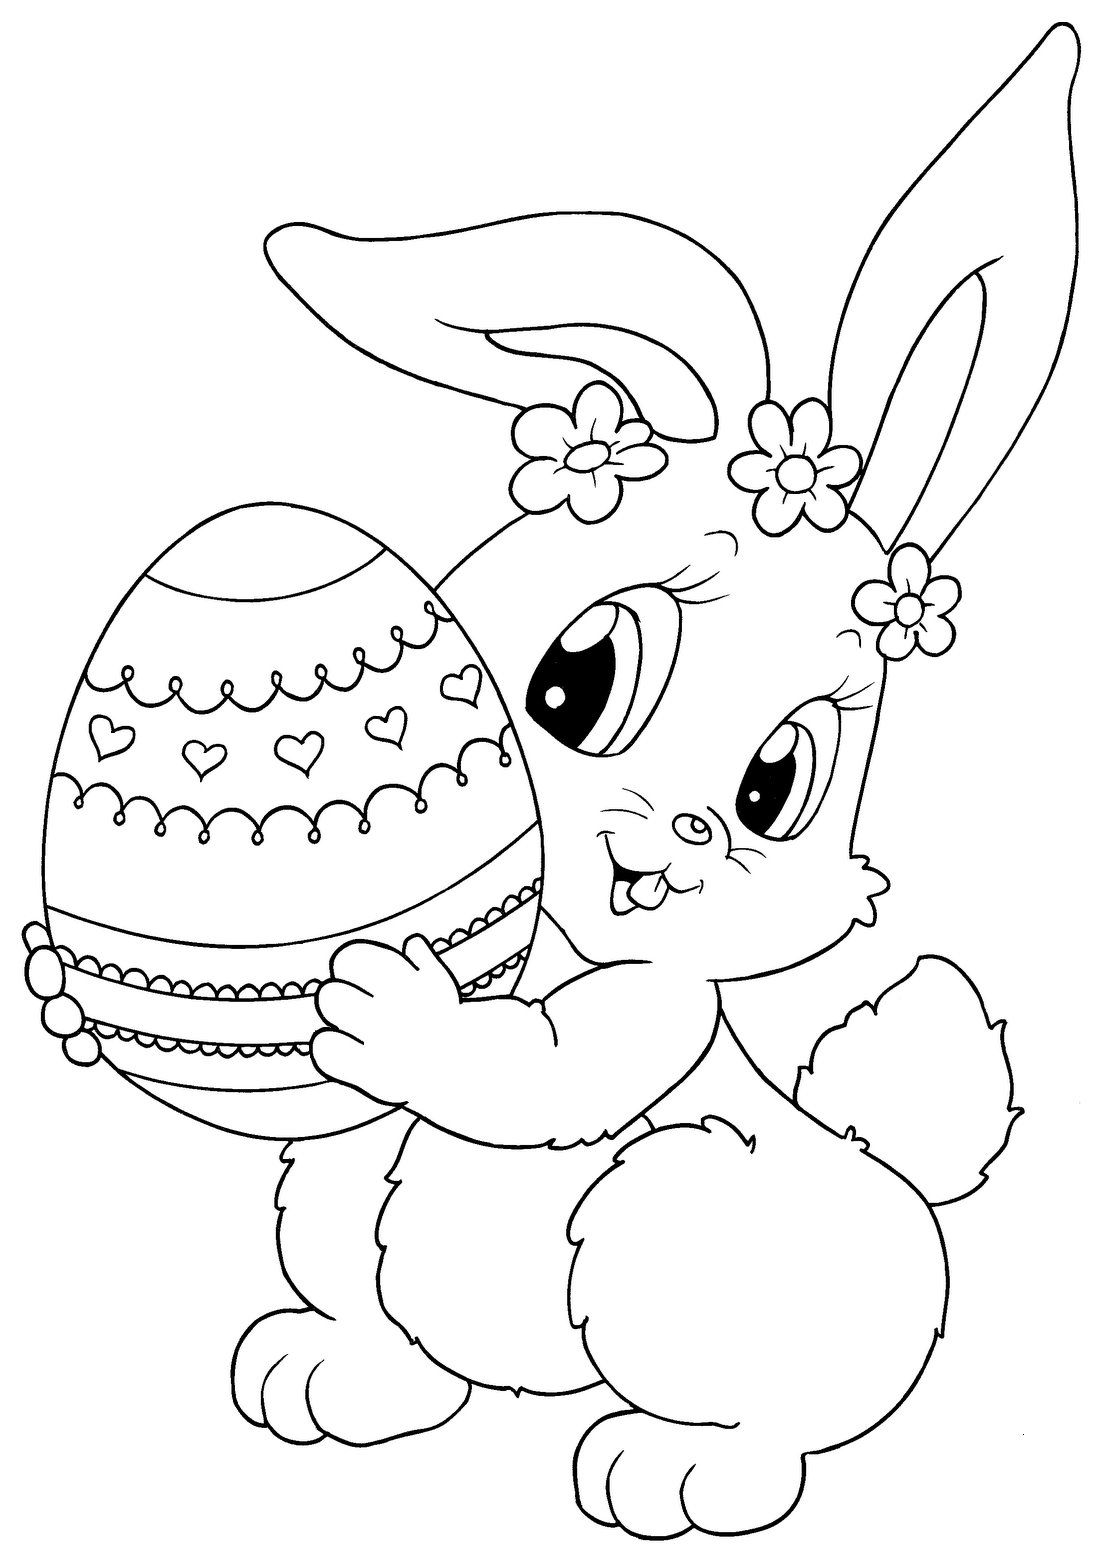 Top 15 Free Printable Easter Bunny Coloring Pages Online | Easter ...